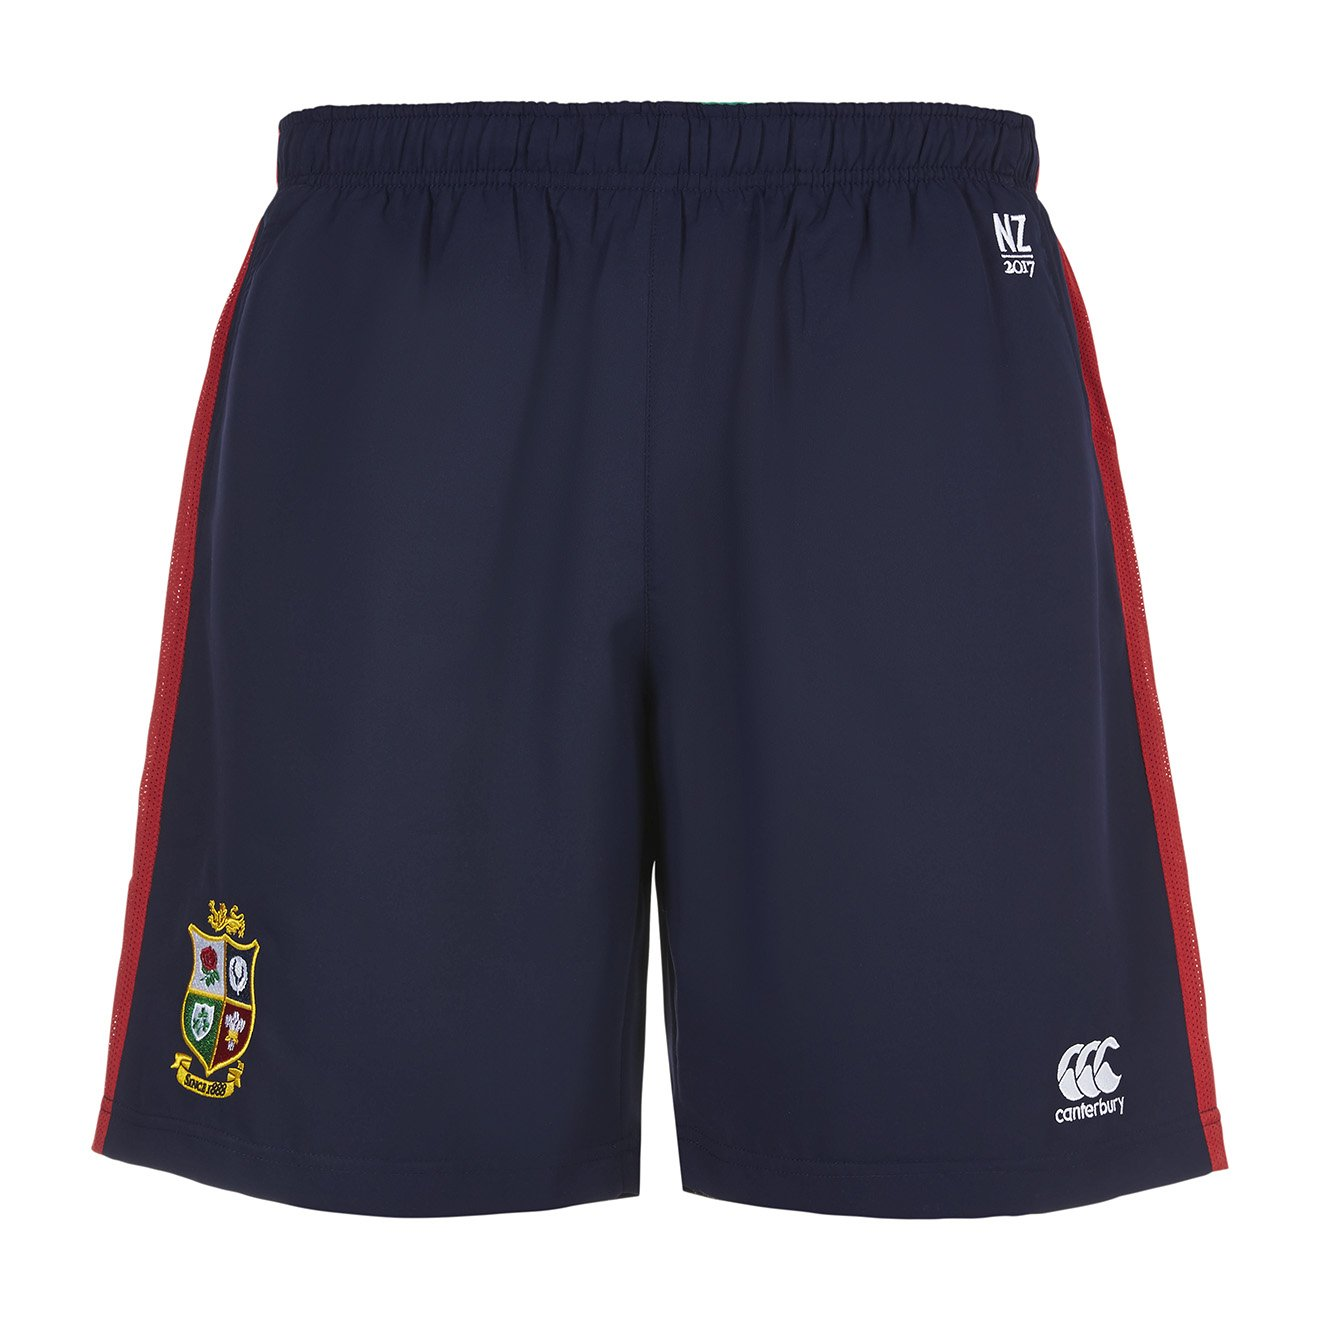 British And Irish Lions Canterbury Herren-Vapodri-Shorts E523566-E03-S